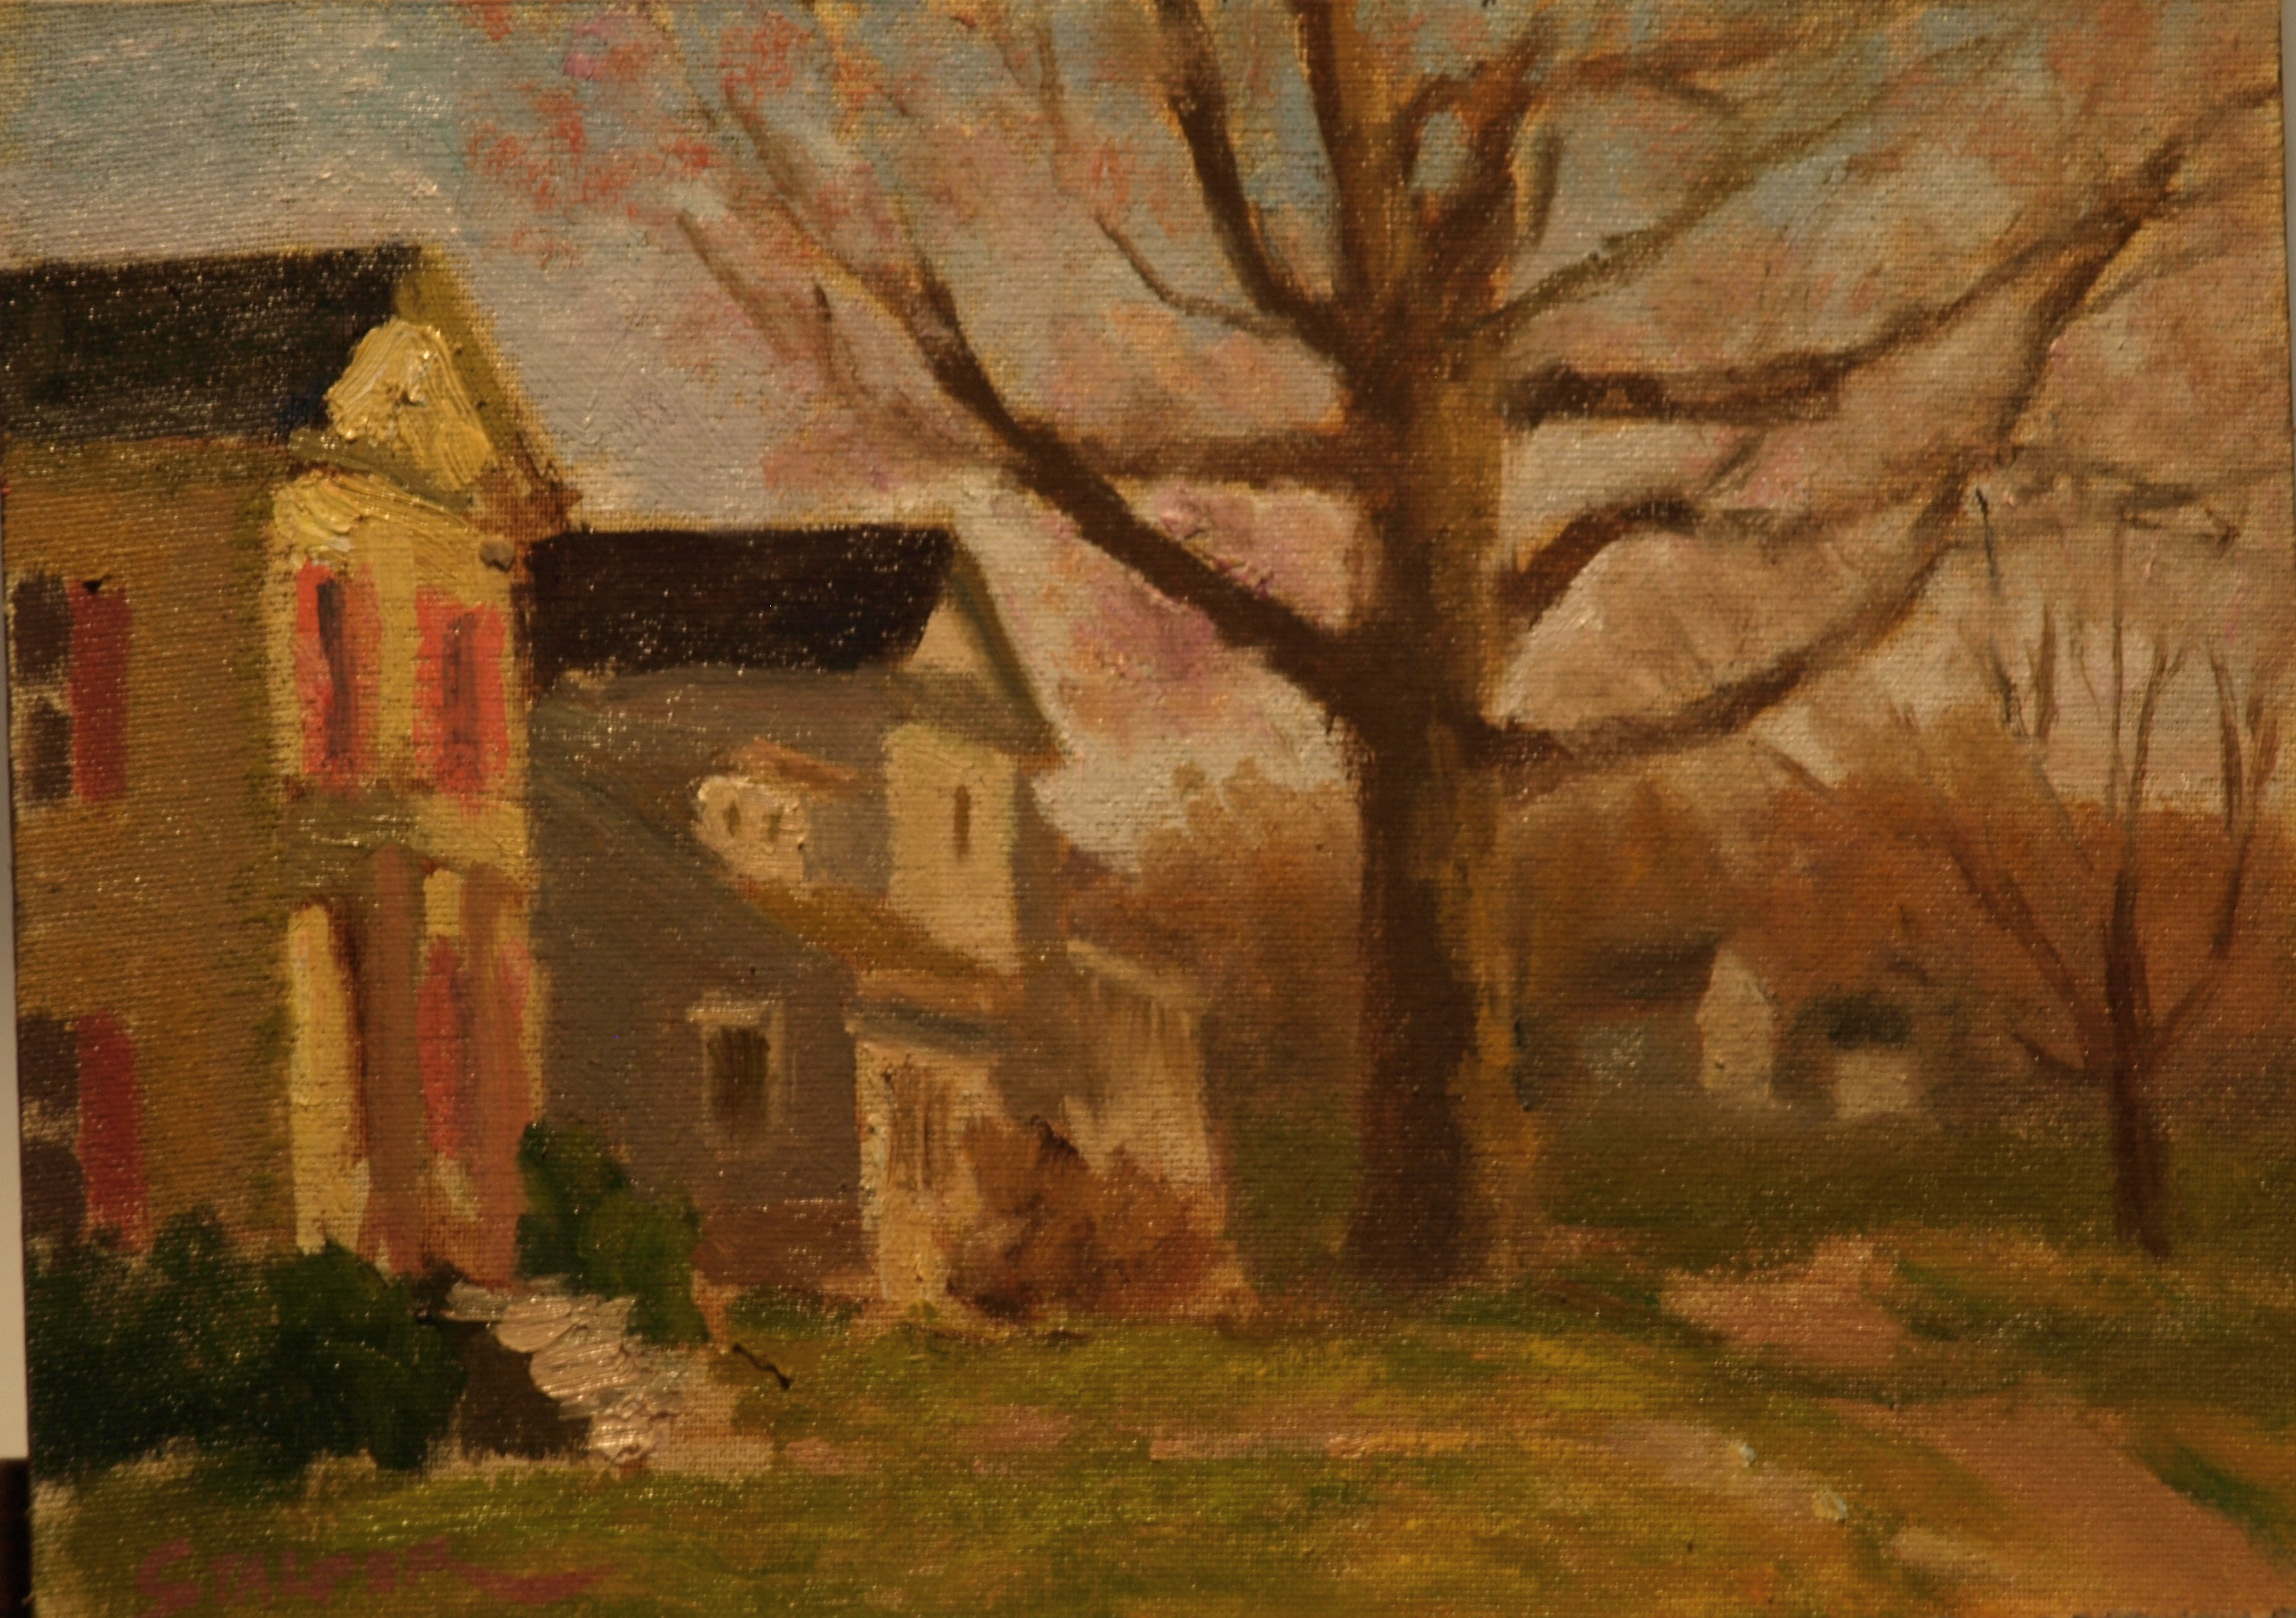 Main Street - New Milford, Oil on Canvas on Panel, 9 x 12 Inches, by Richard Stalter, $225